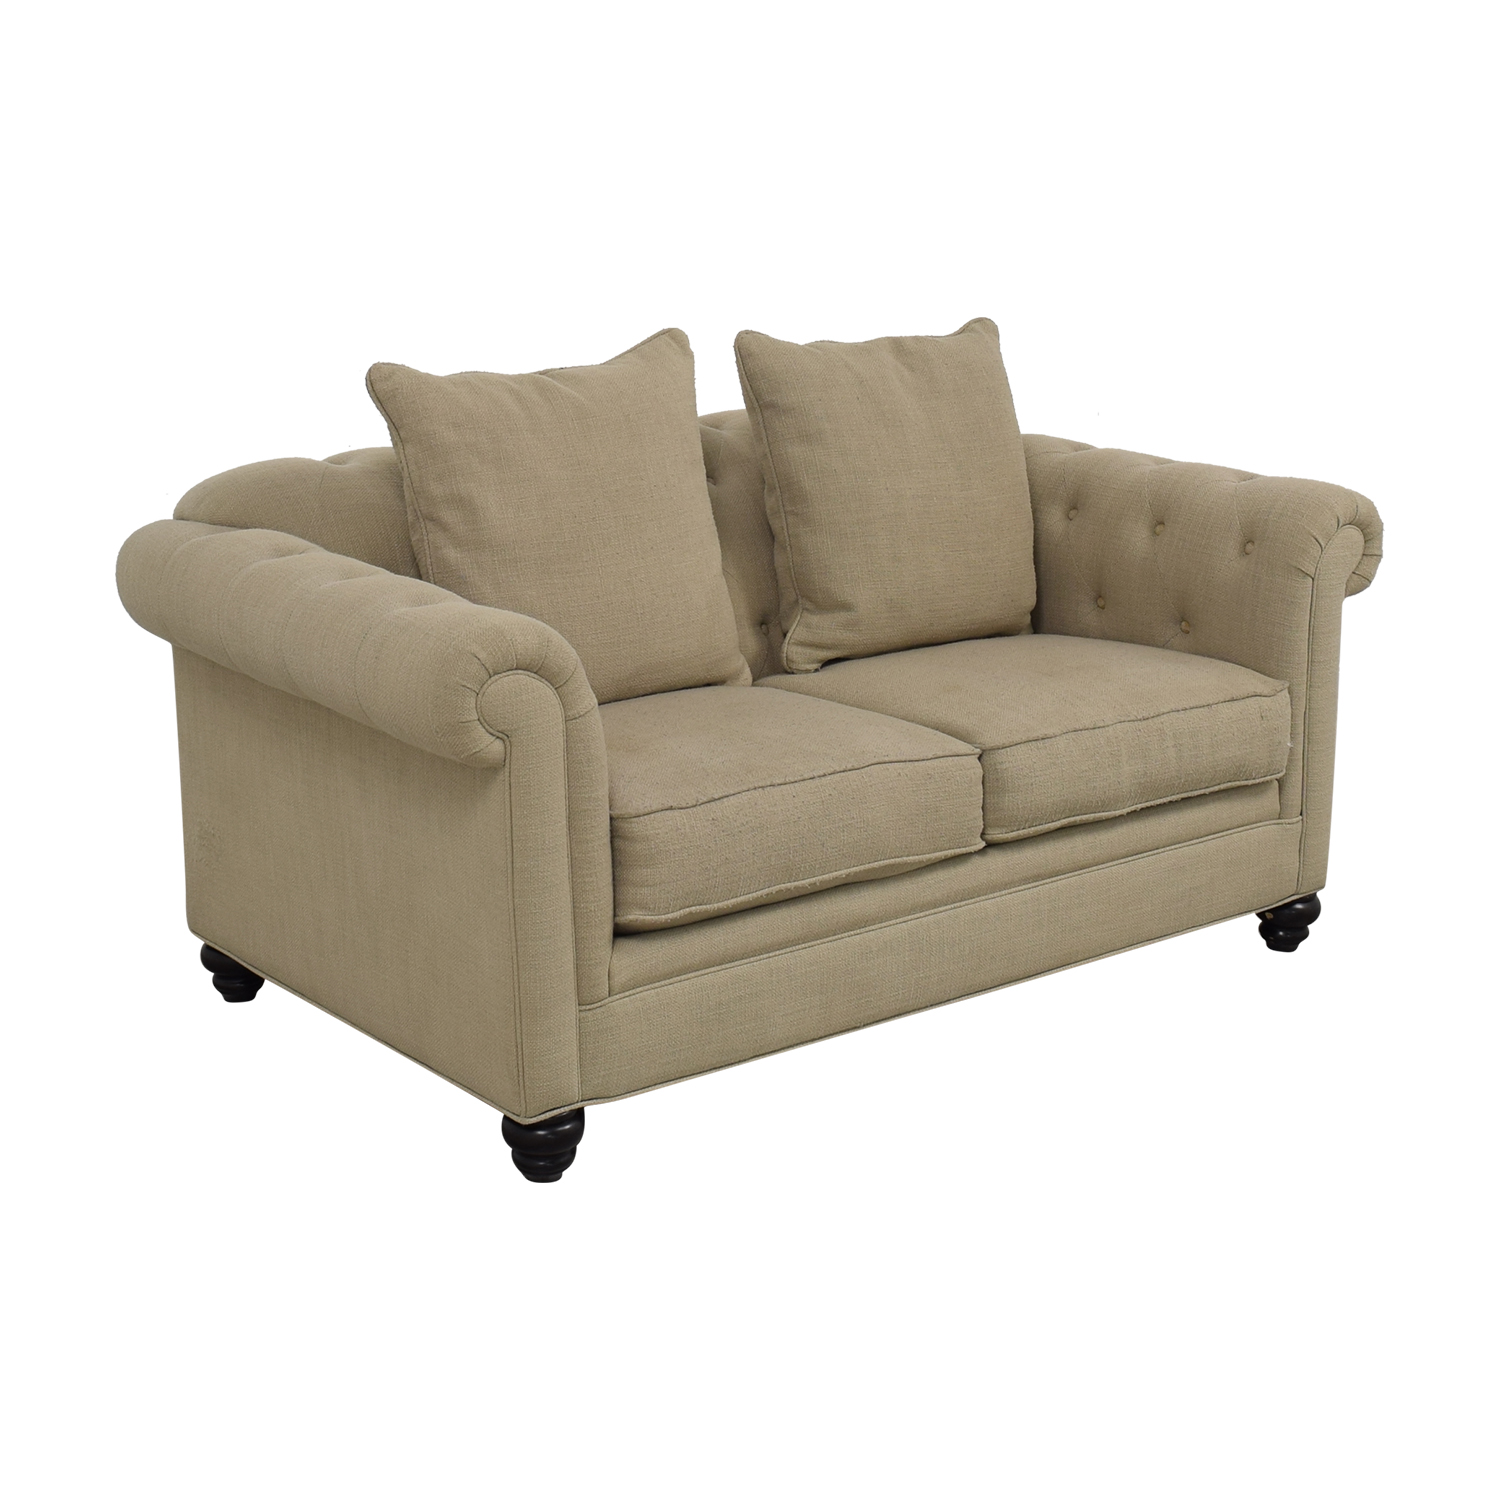 Jonathan Louis Jonathan Louis Cambridge Loveseat Sofas